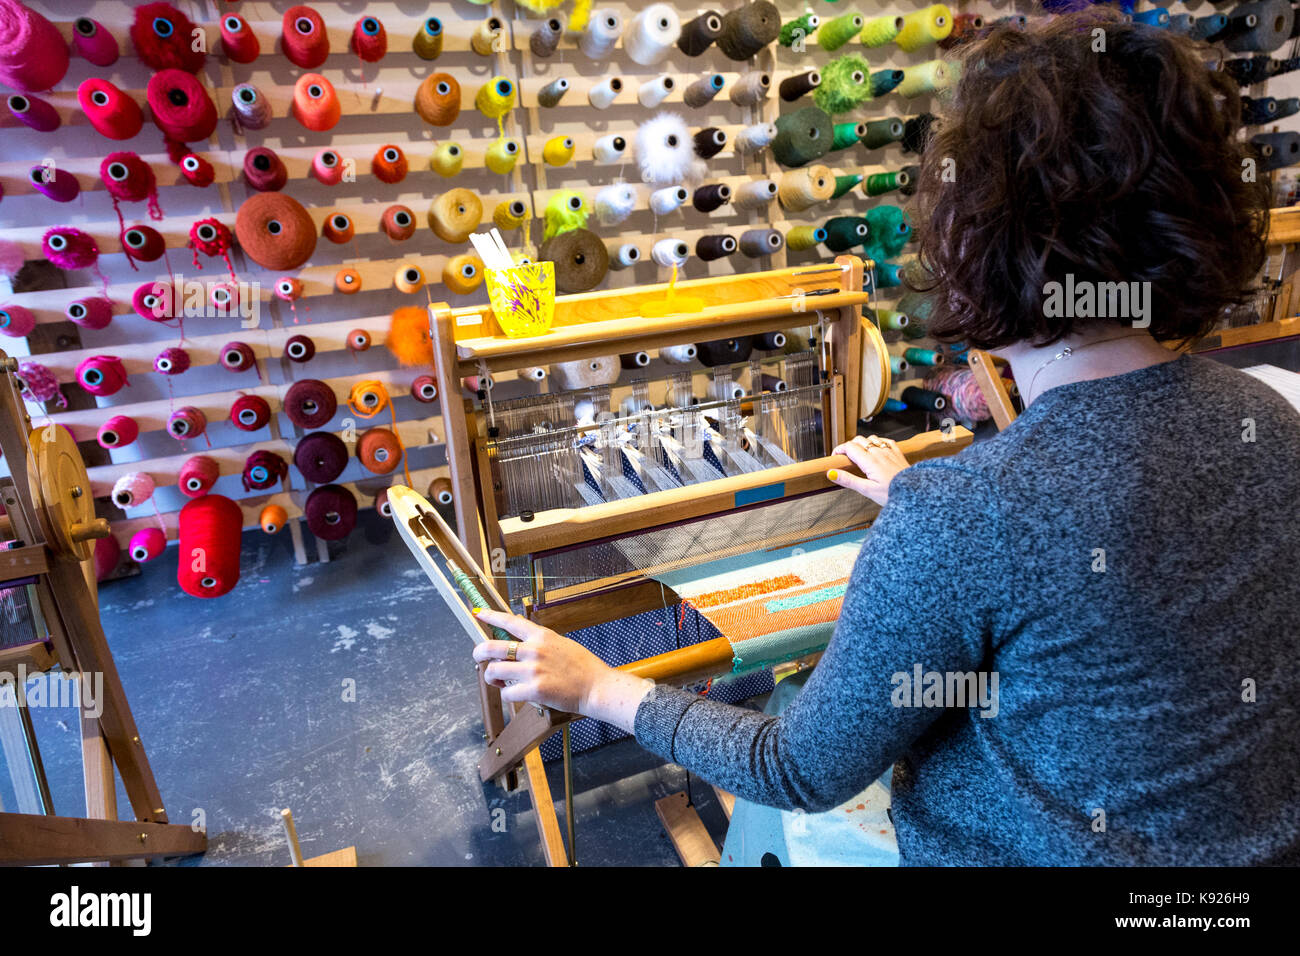 North London weaving workshop produces shawls and house commodities on August 19, 2017 - Stock Image